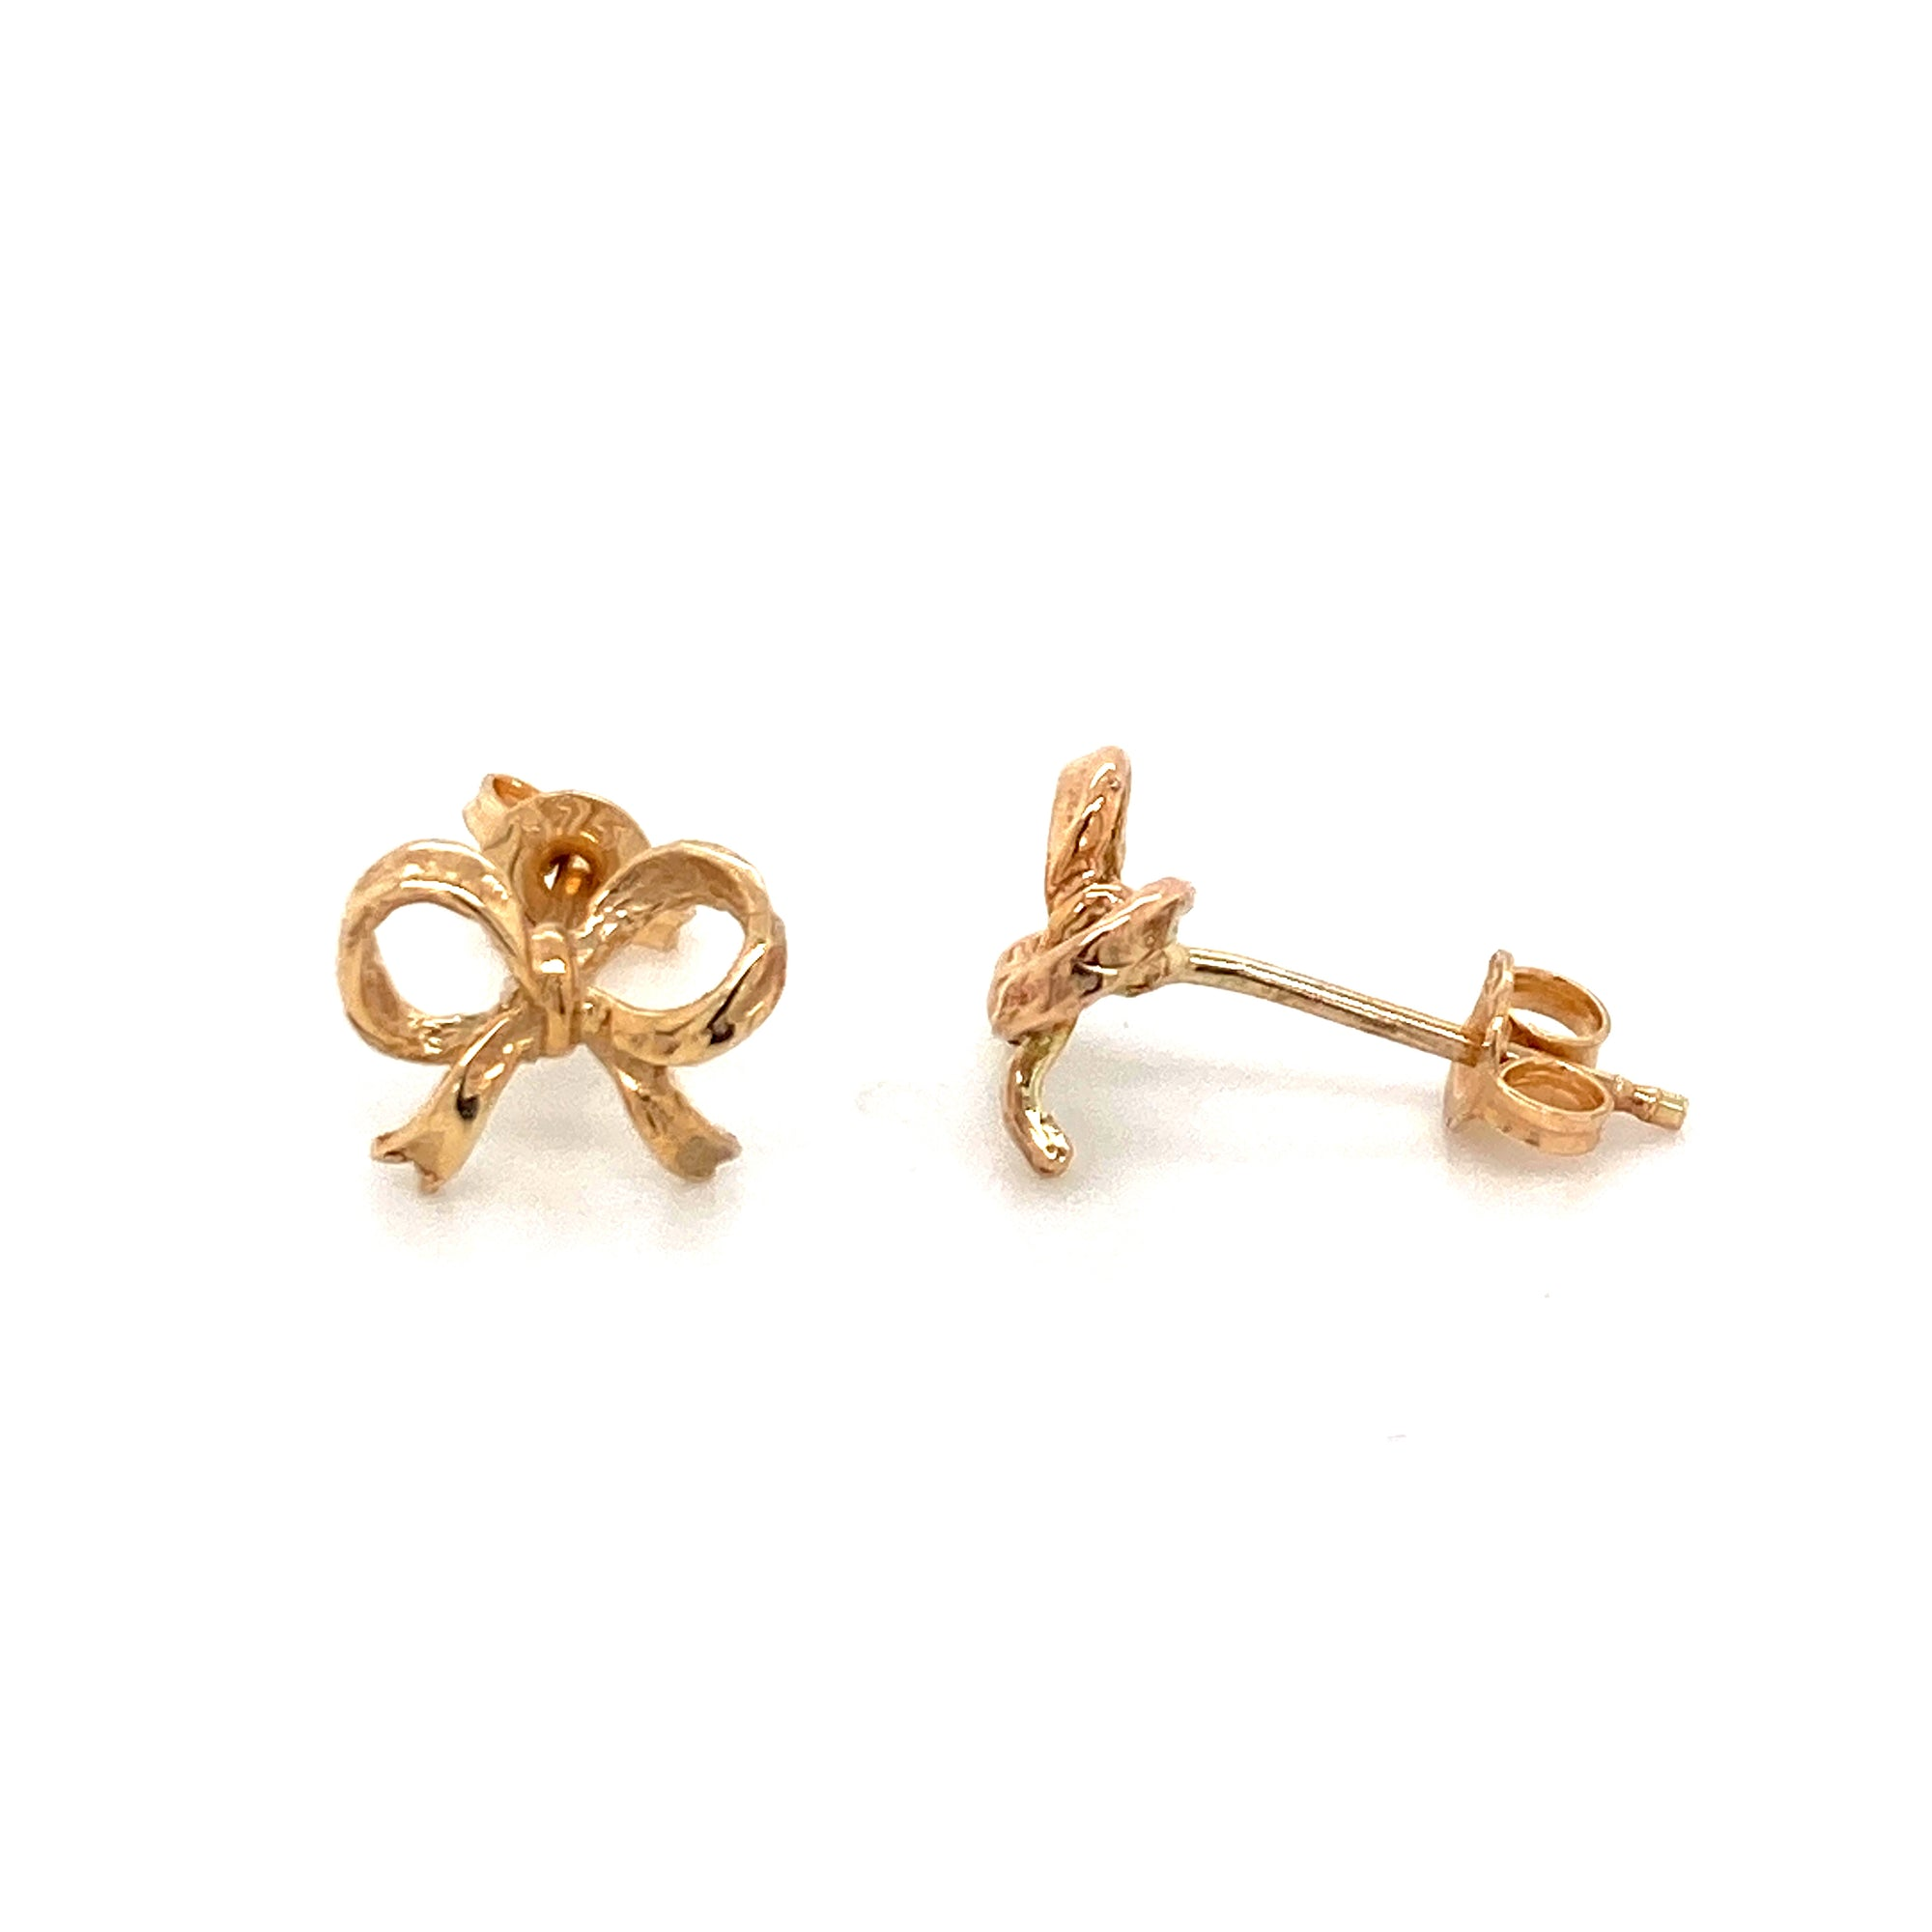 9ct bow studs - Red Carpet Jewellers